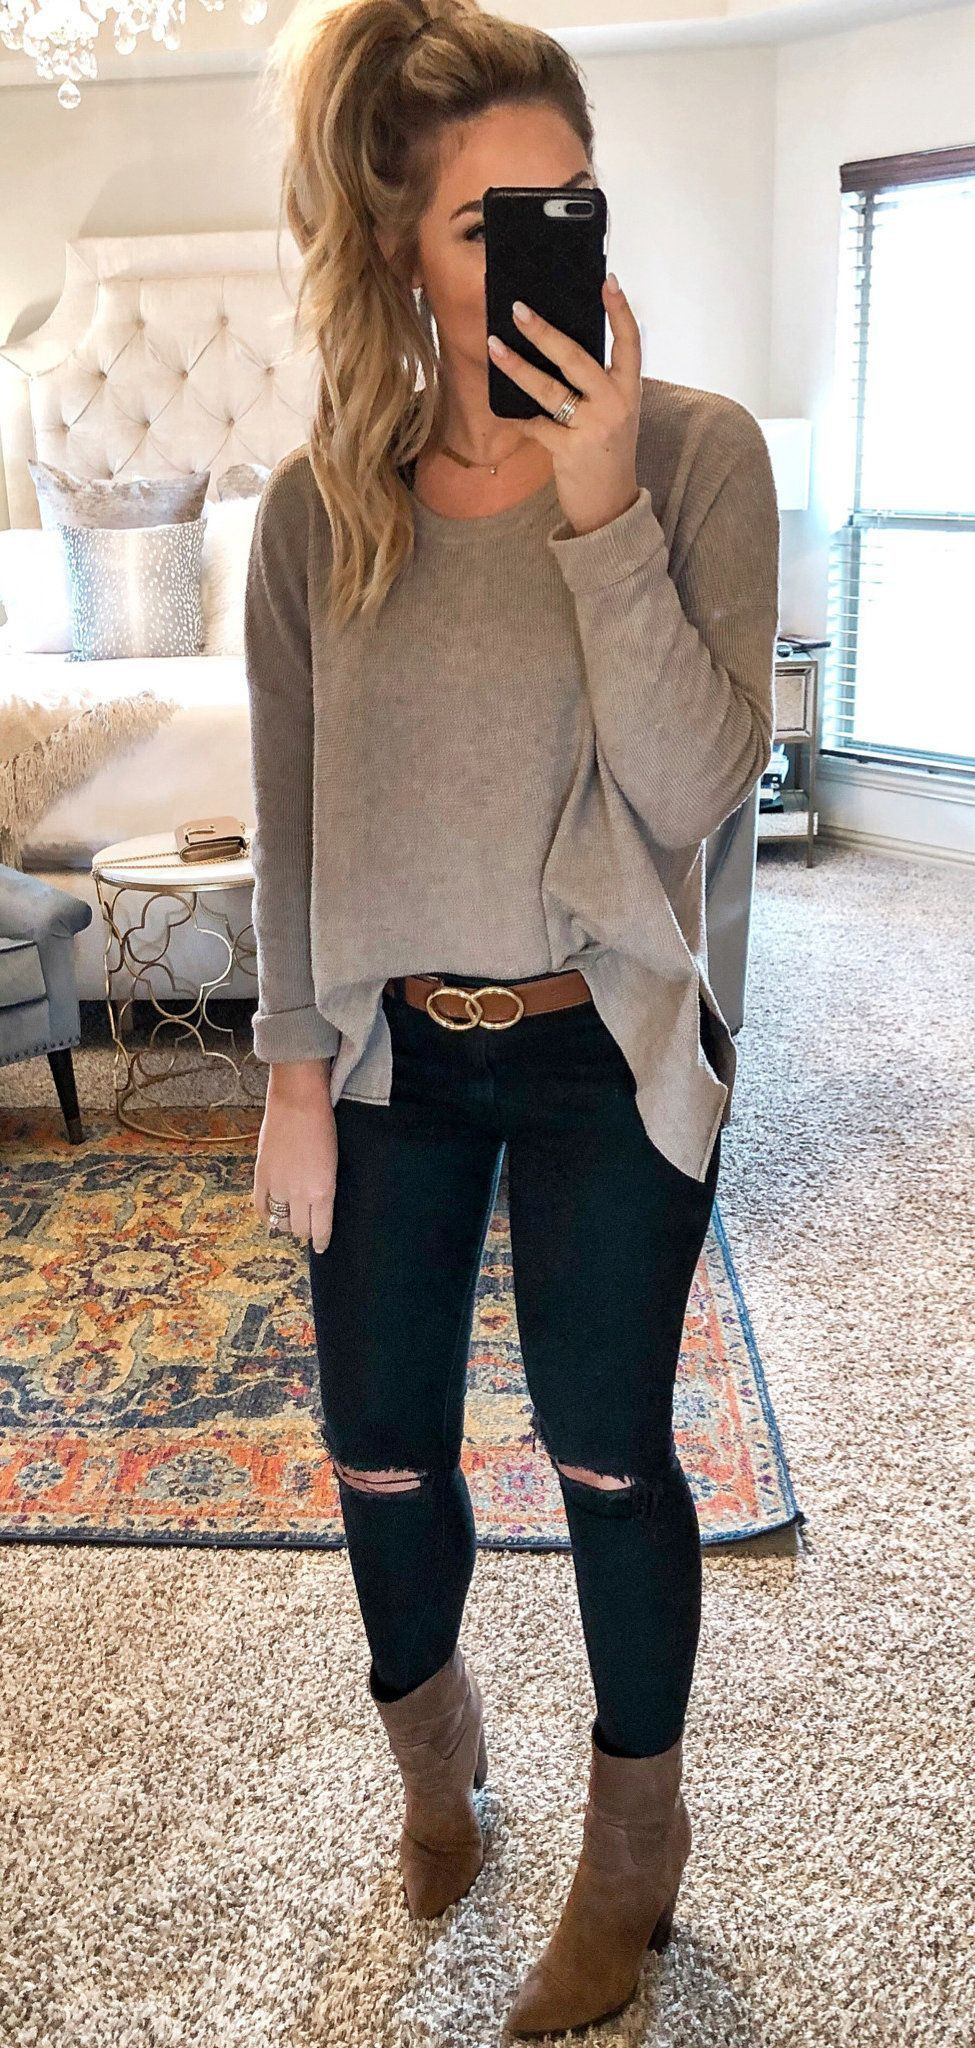 Beige and brown trousers, jeans, outfit designs